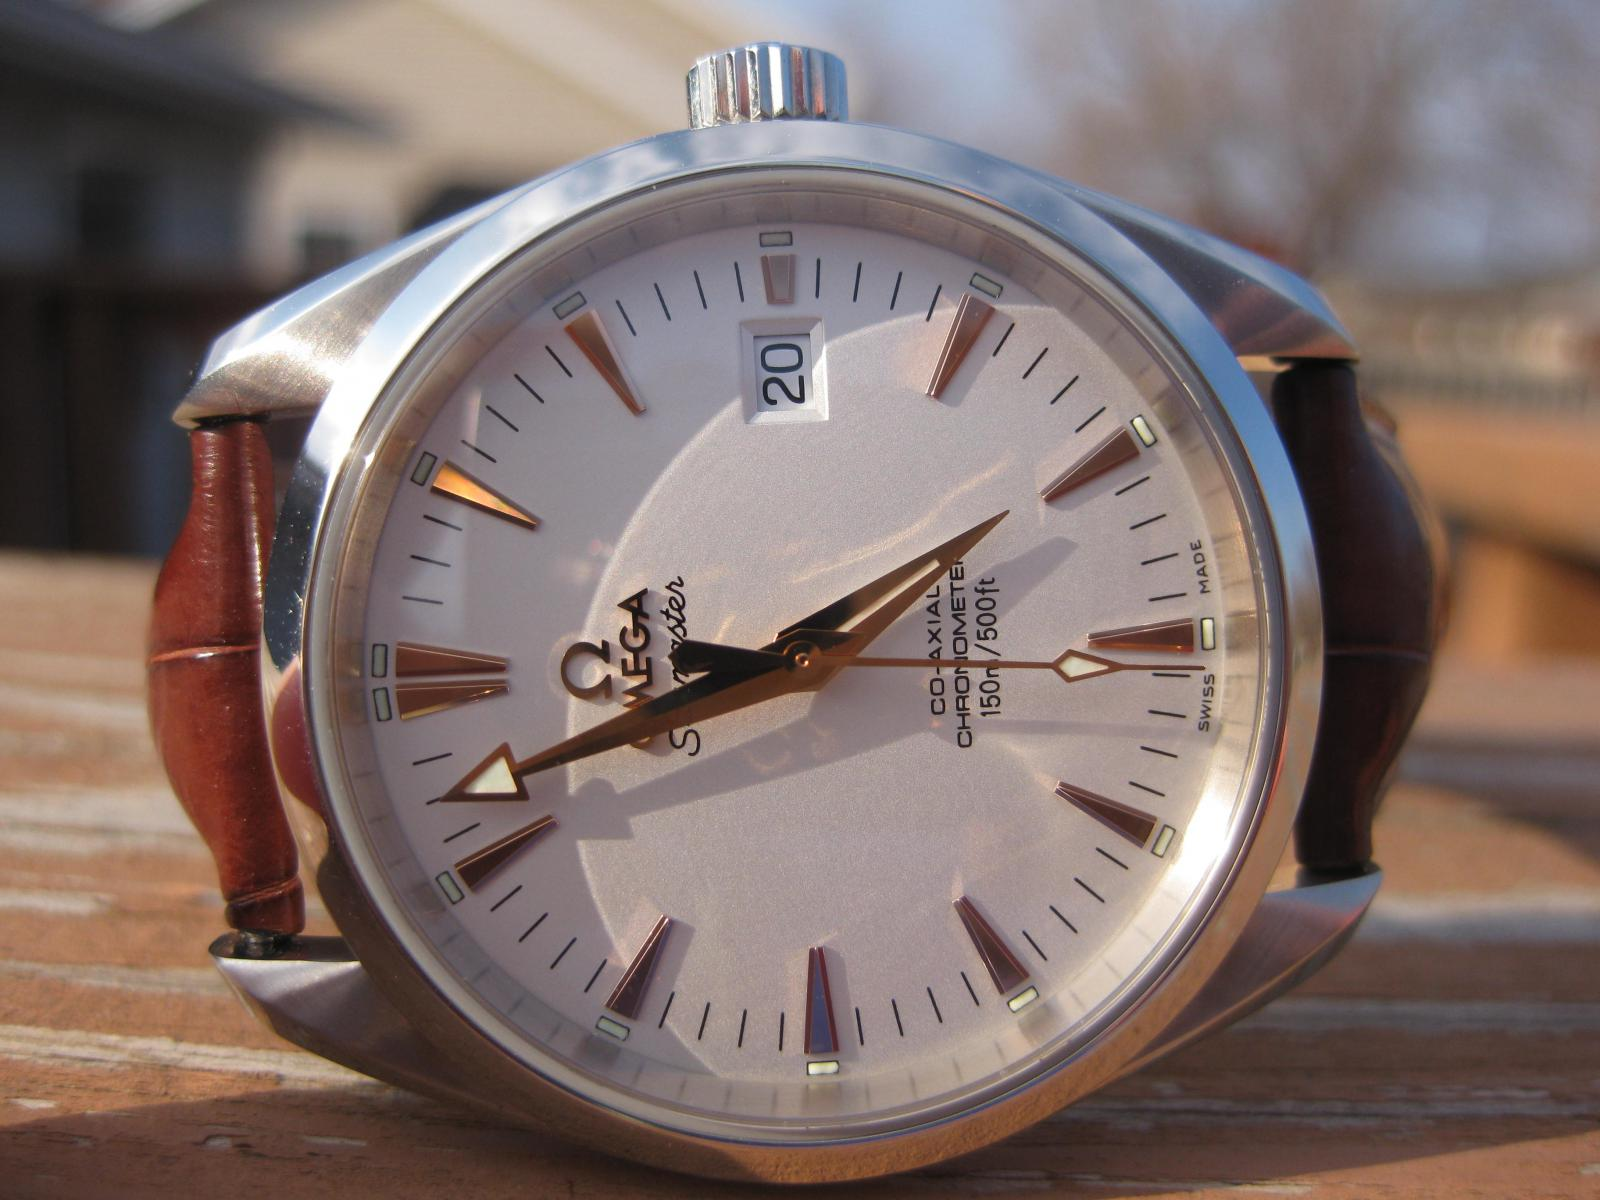 Lets see your Omega-img_1823.jpg